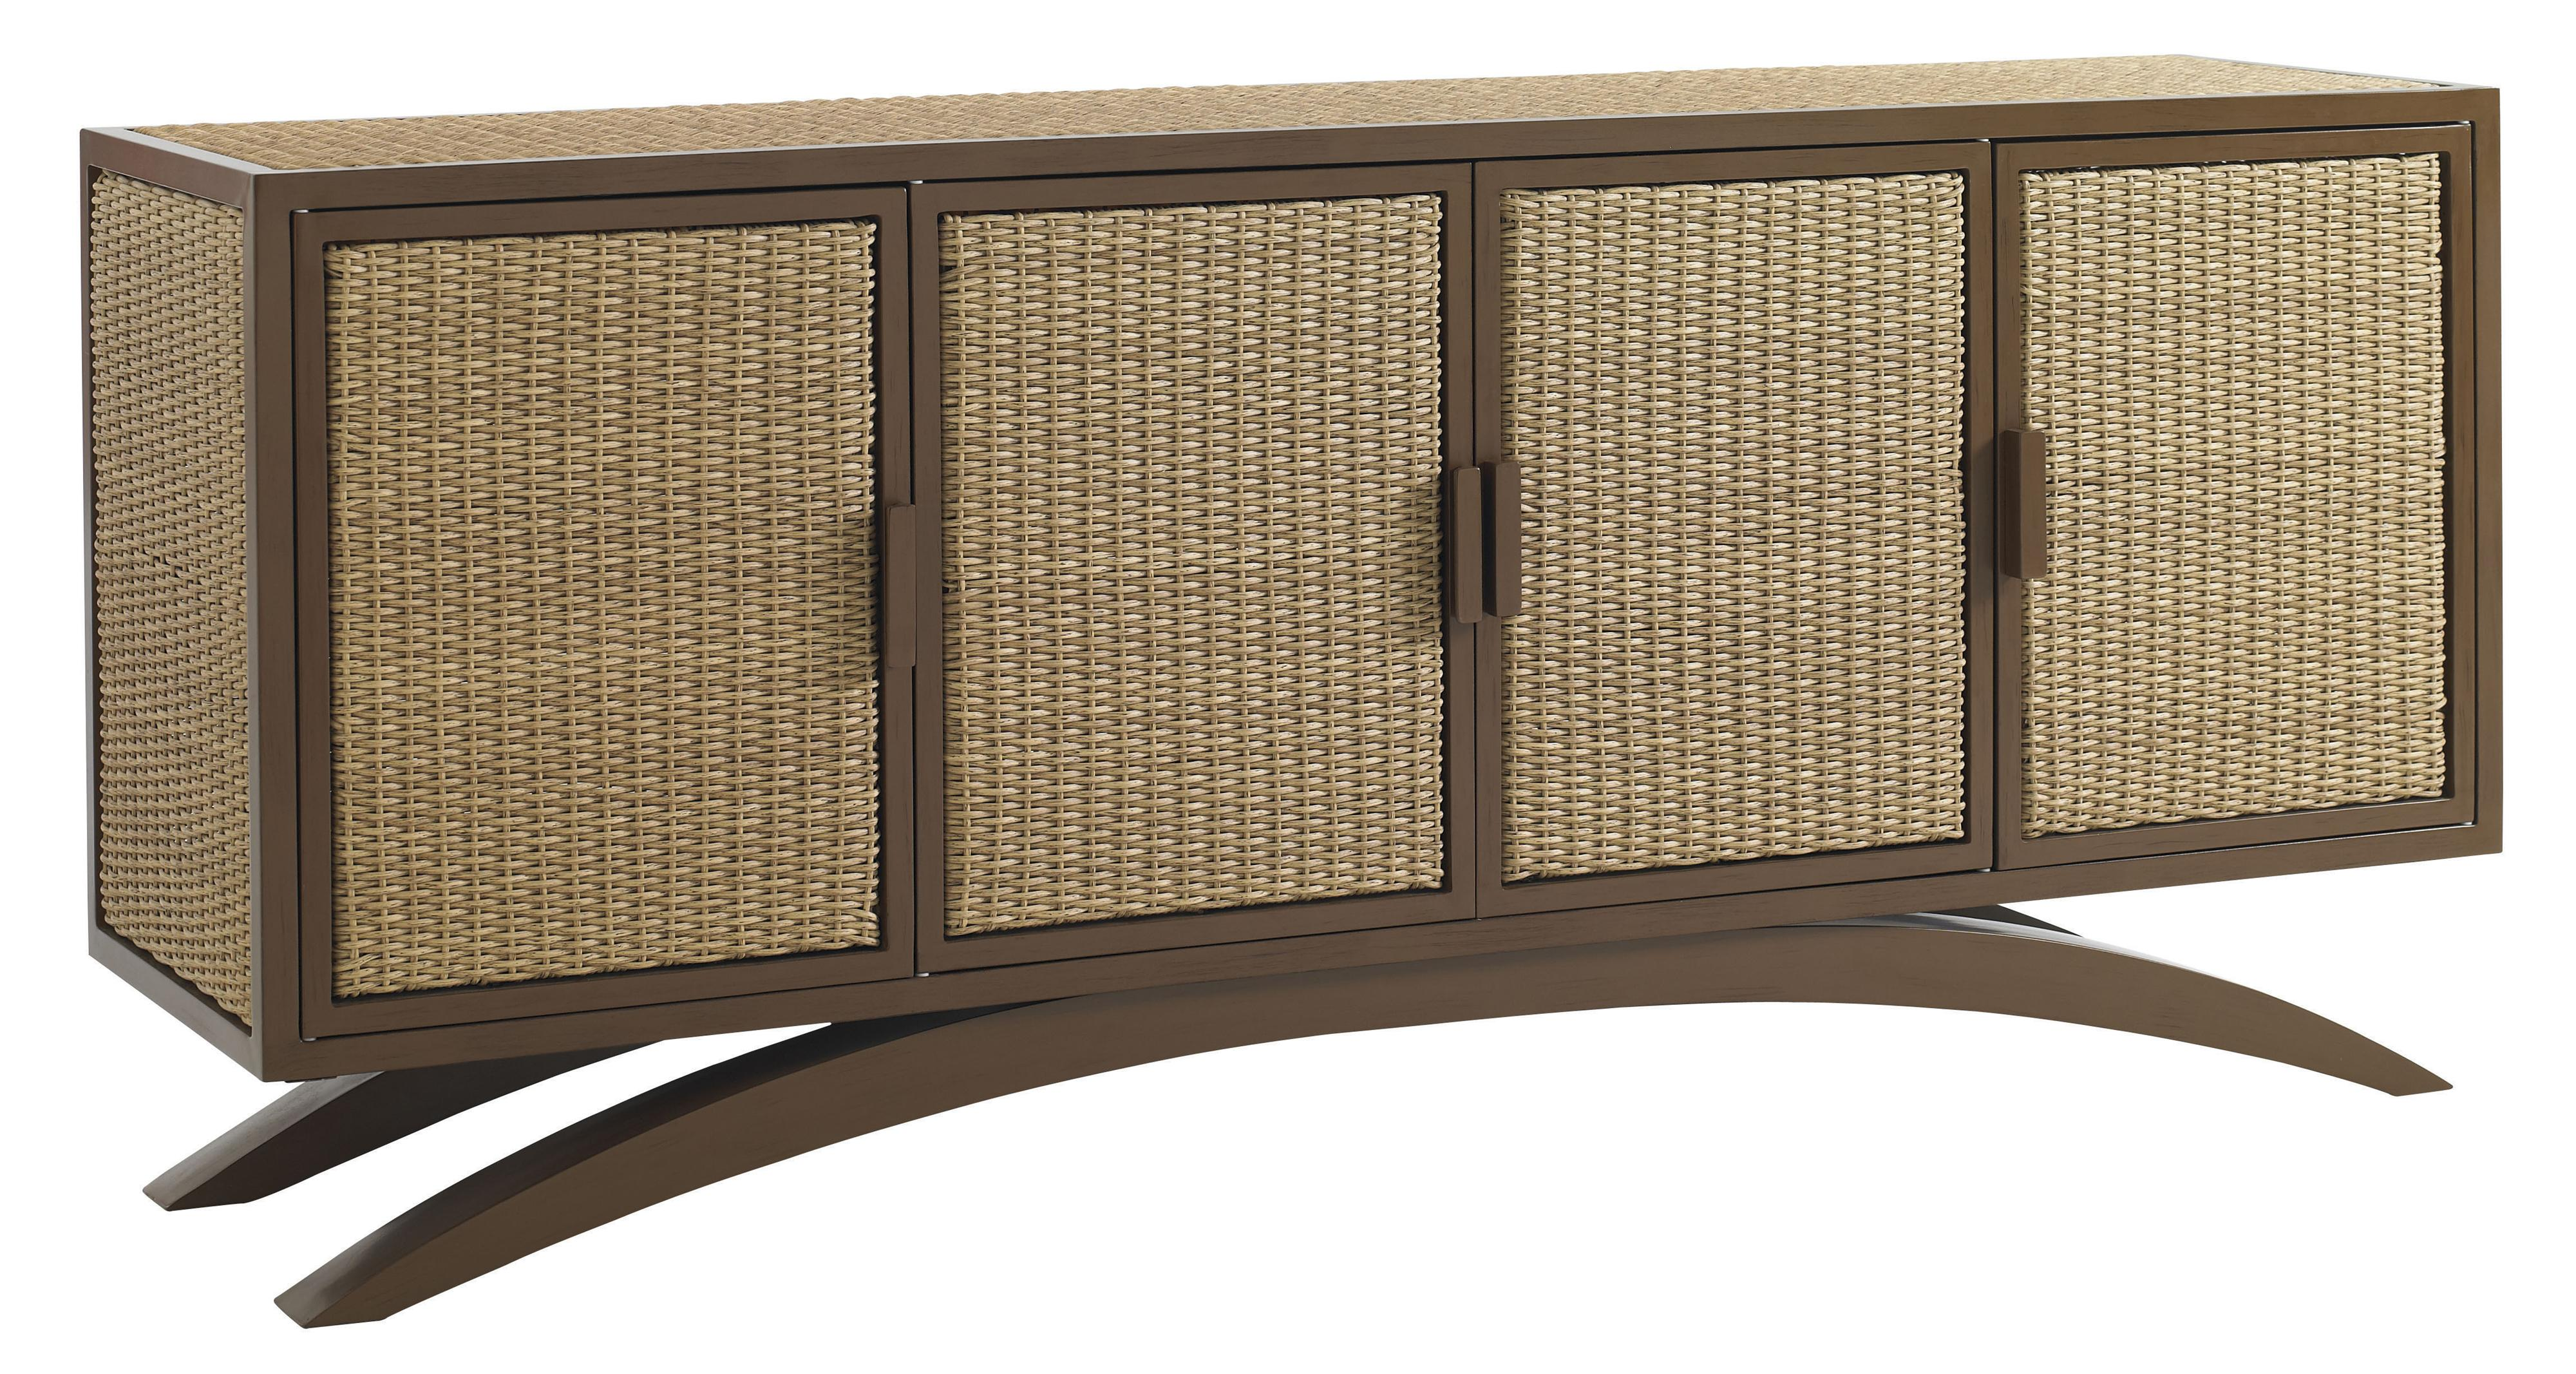 Tommy Bahama Outdoor Living Aviano Buffet - Item Number: 3220-852